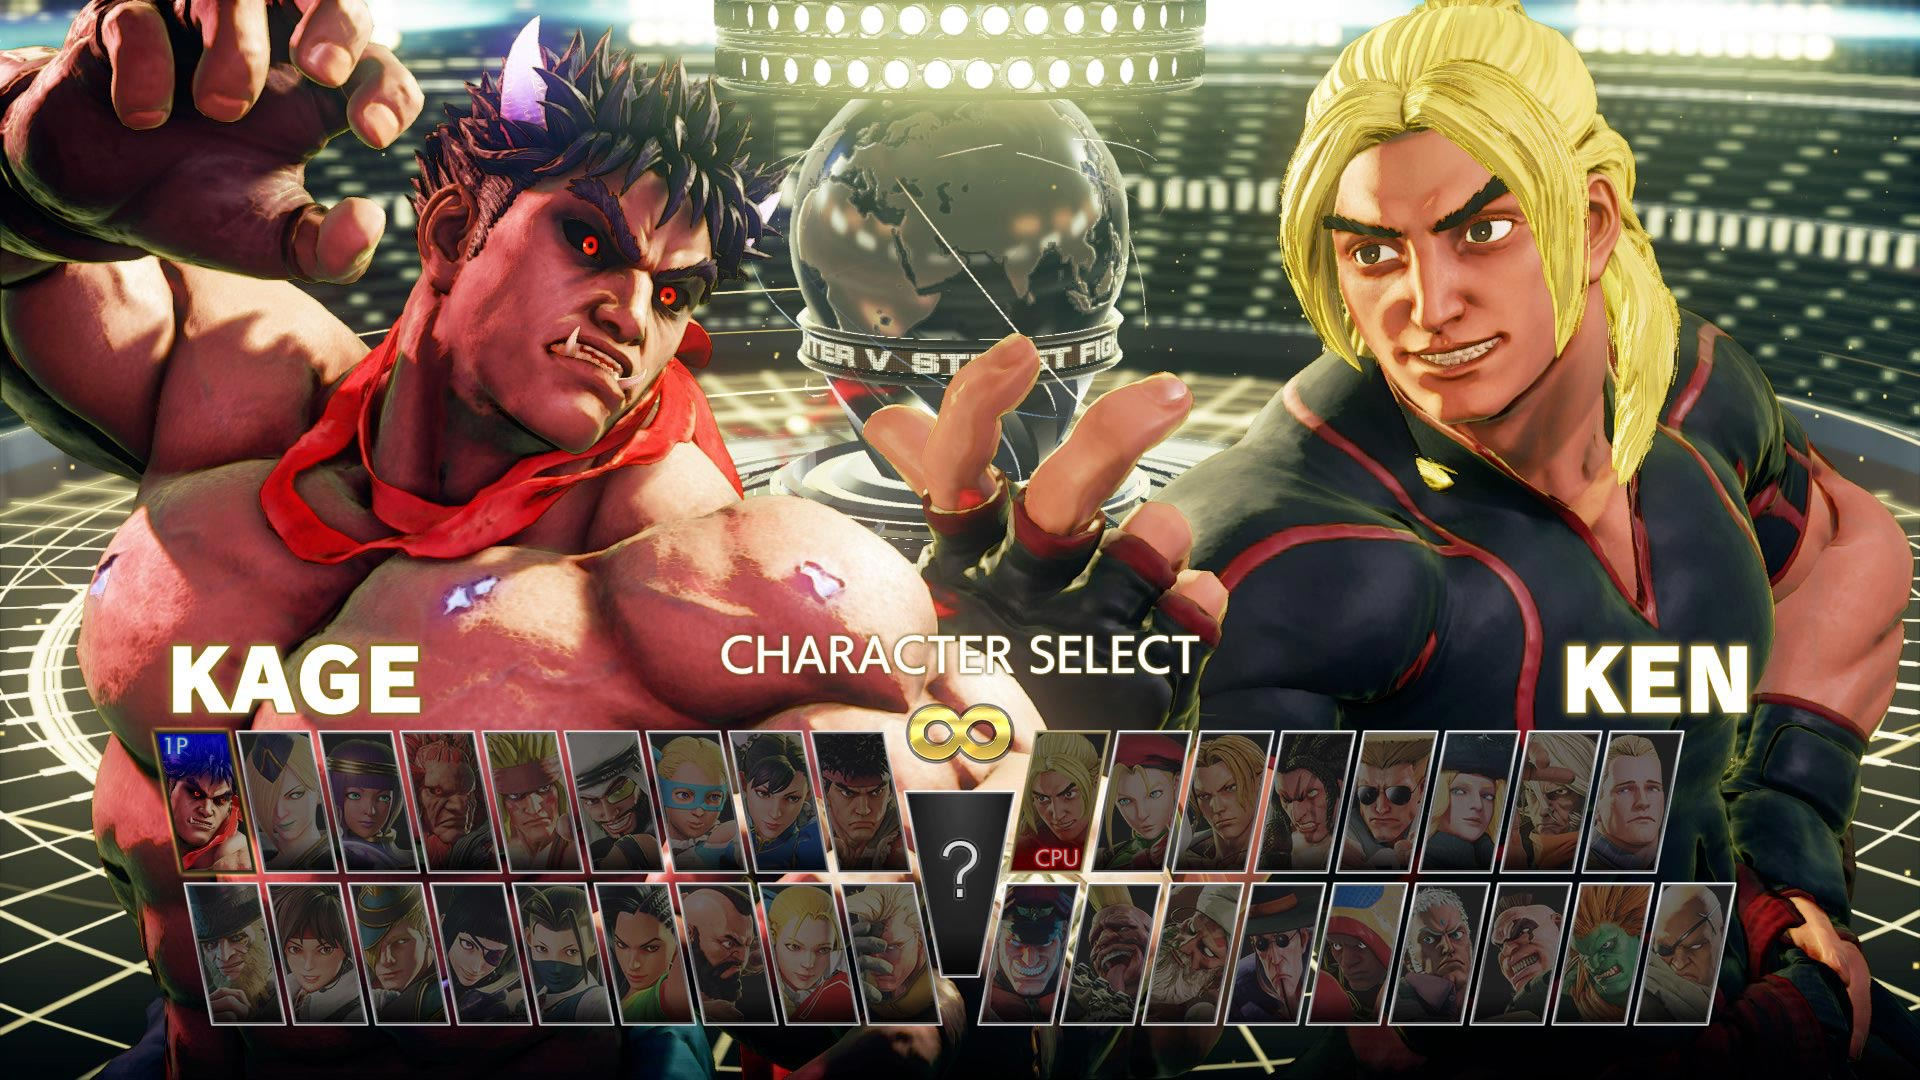 Kage in Street Fighter 5 1 out of 1 image gallery